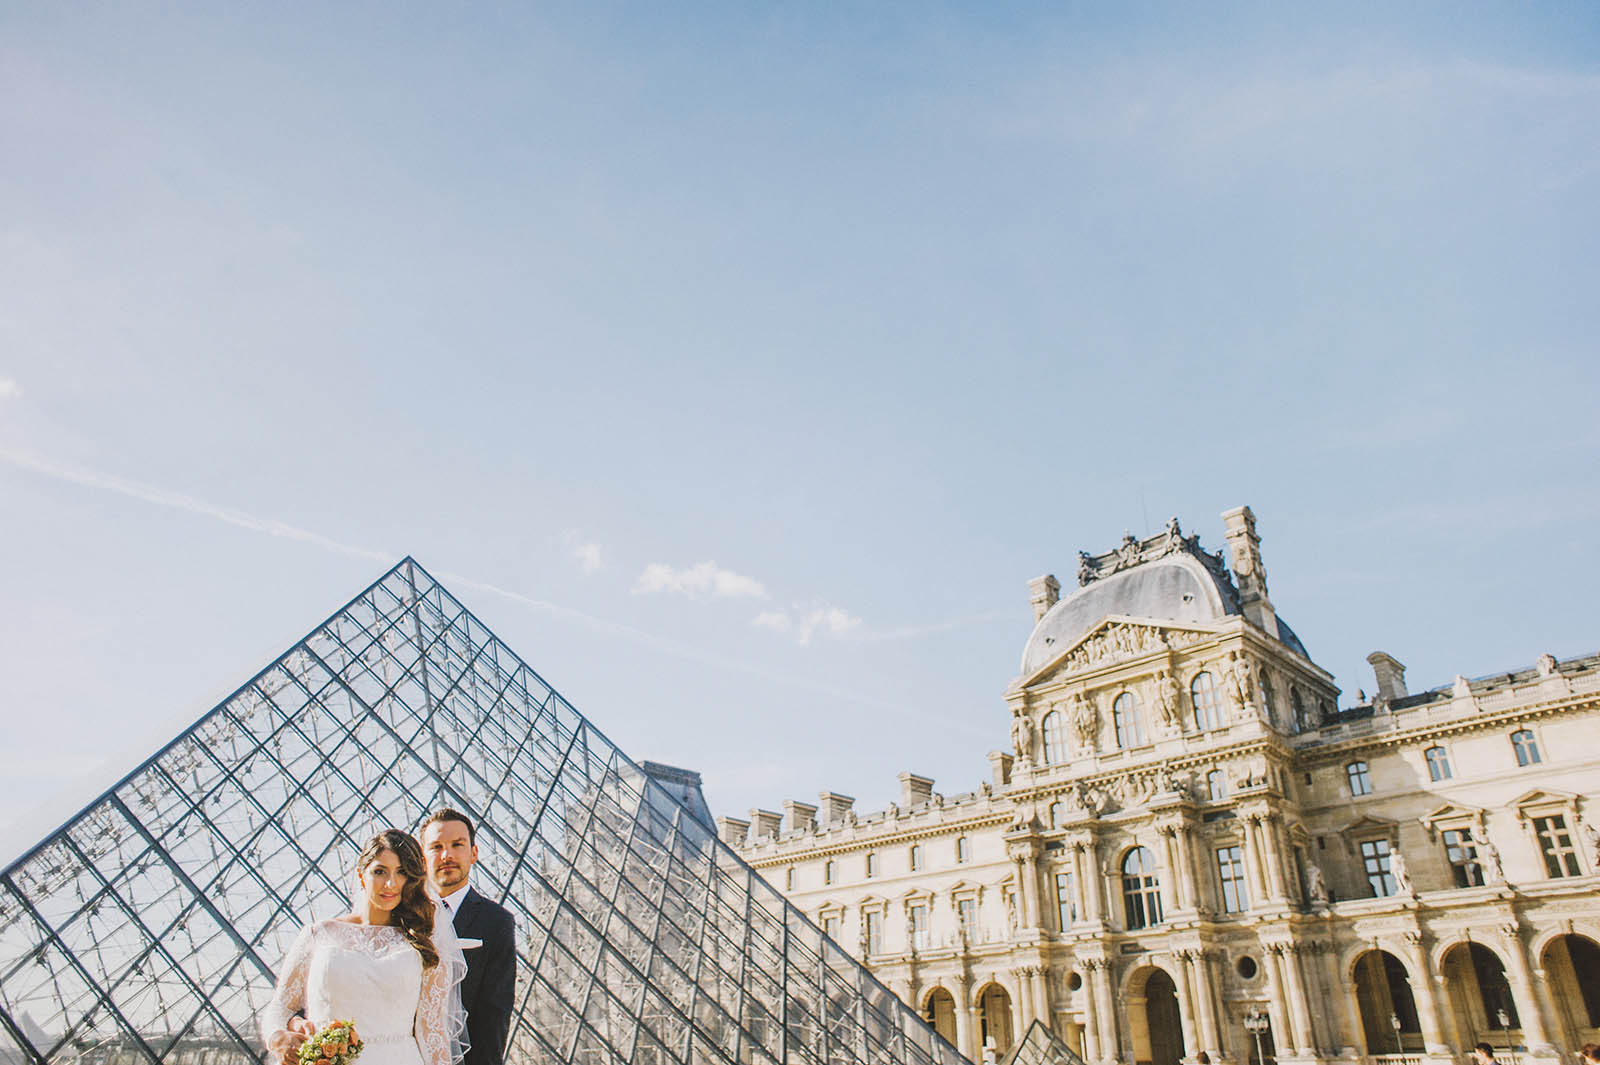 Portraits at the Louvre | Springtime Paris Elopement at Parc des Buttes Chaumont